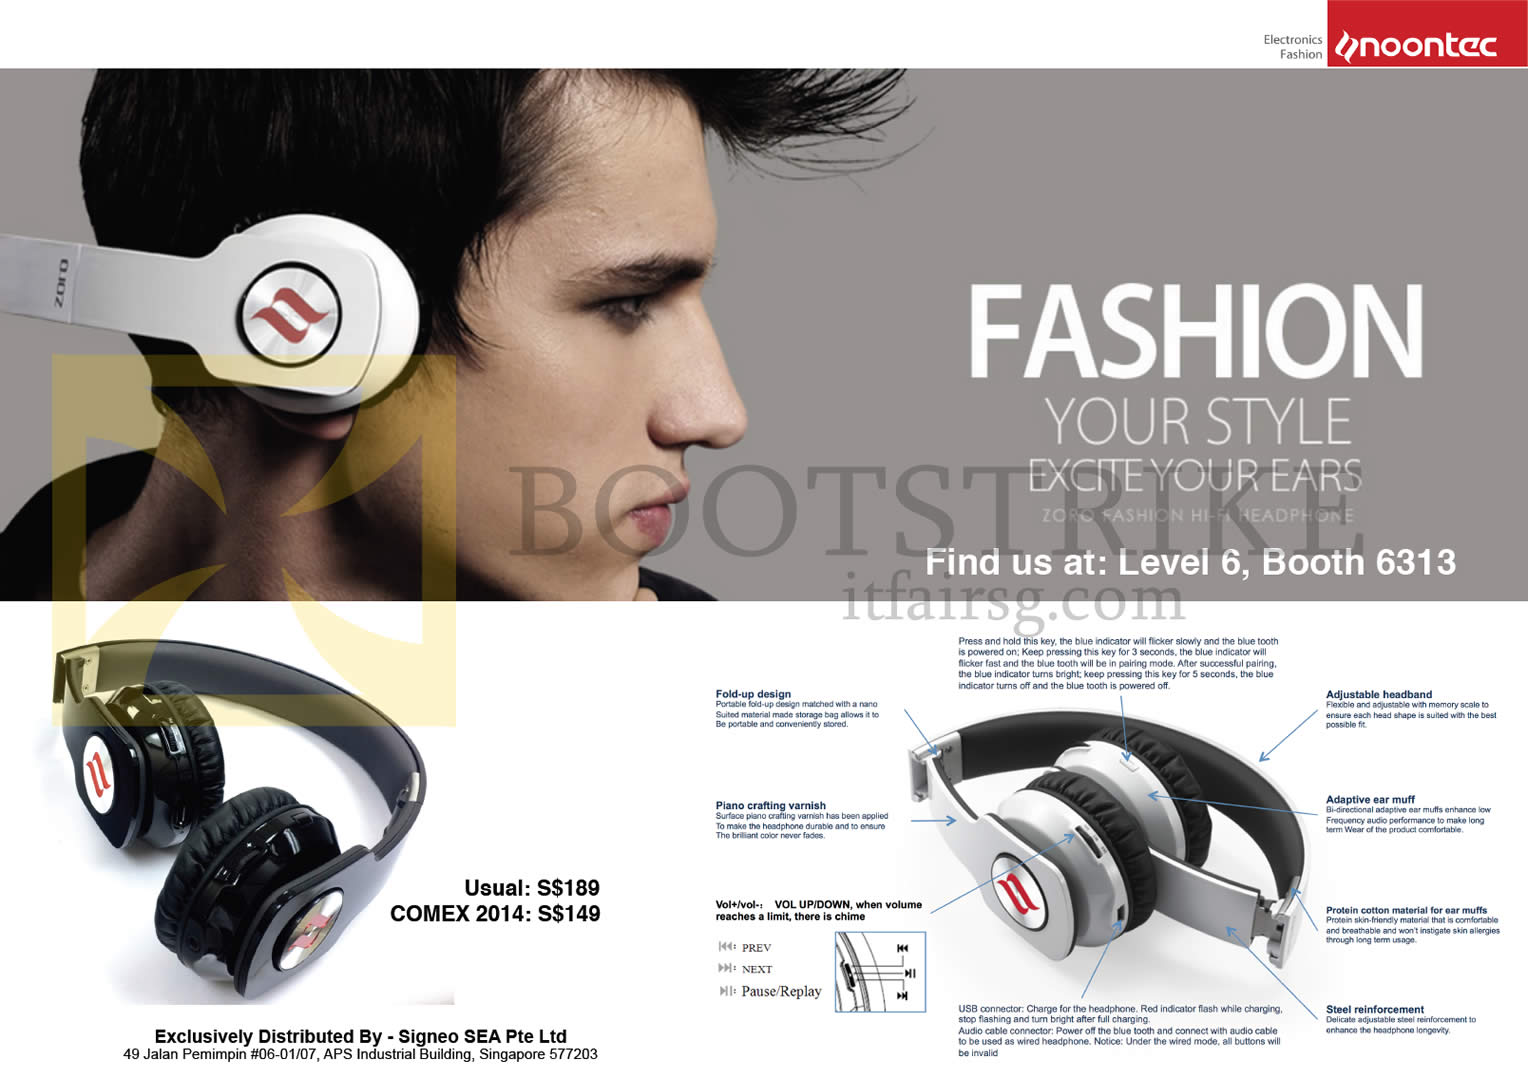 COMEX 2014 price list image brochure of Sprint-Cass Noontec Zoro Fashion Hi-Fi Headphone